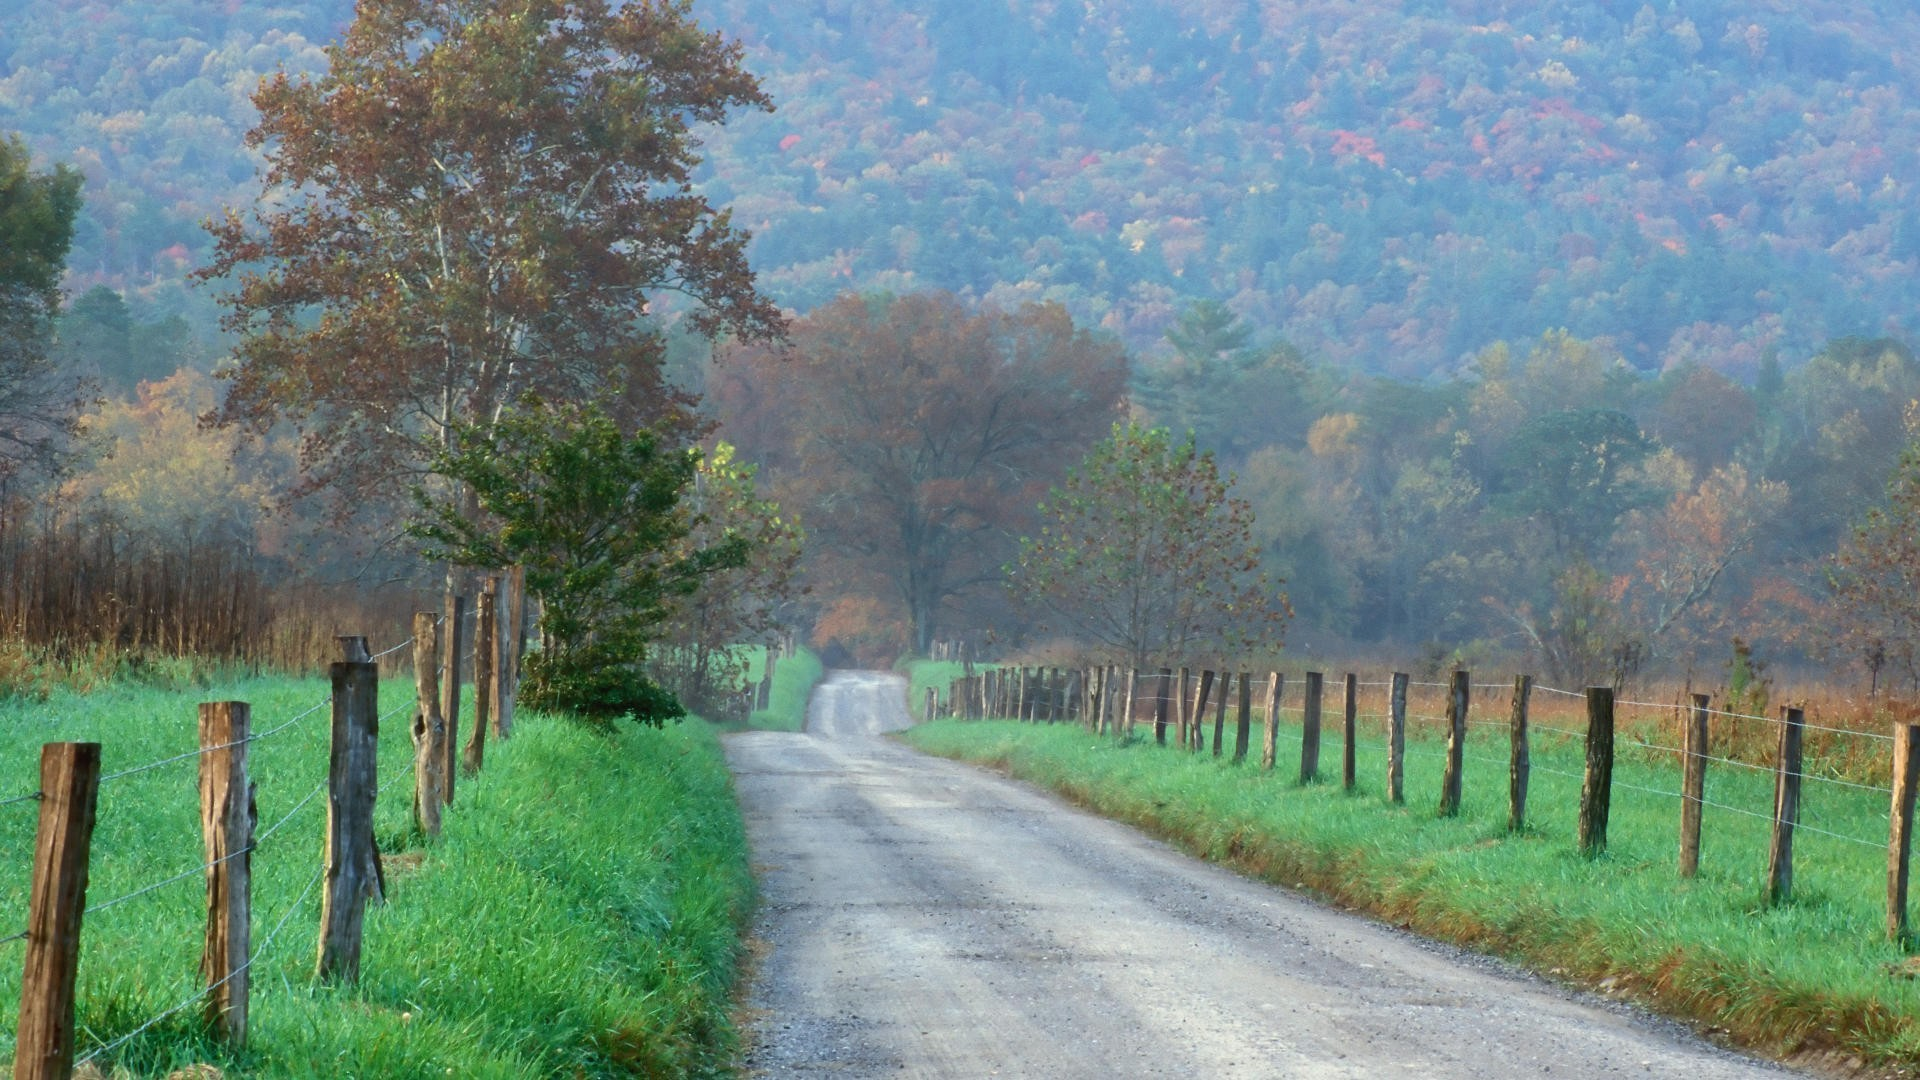 Country Road through Cades Cove, Great Smoky Mountains, Tennessee бесплатно